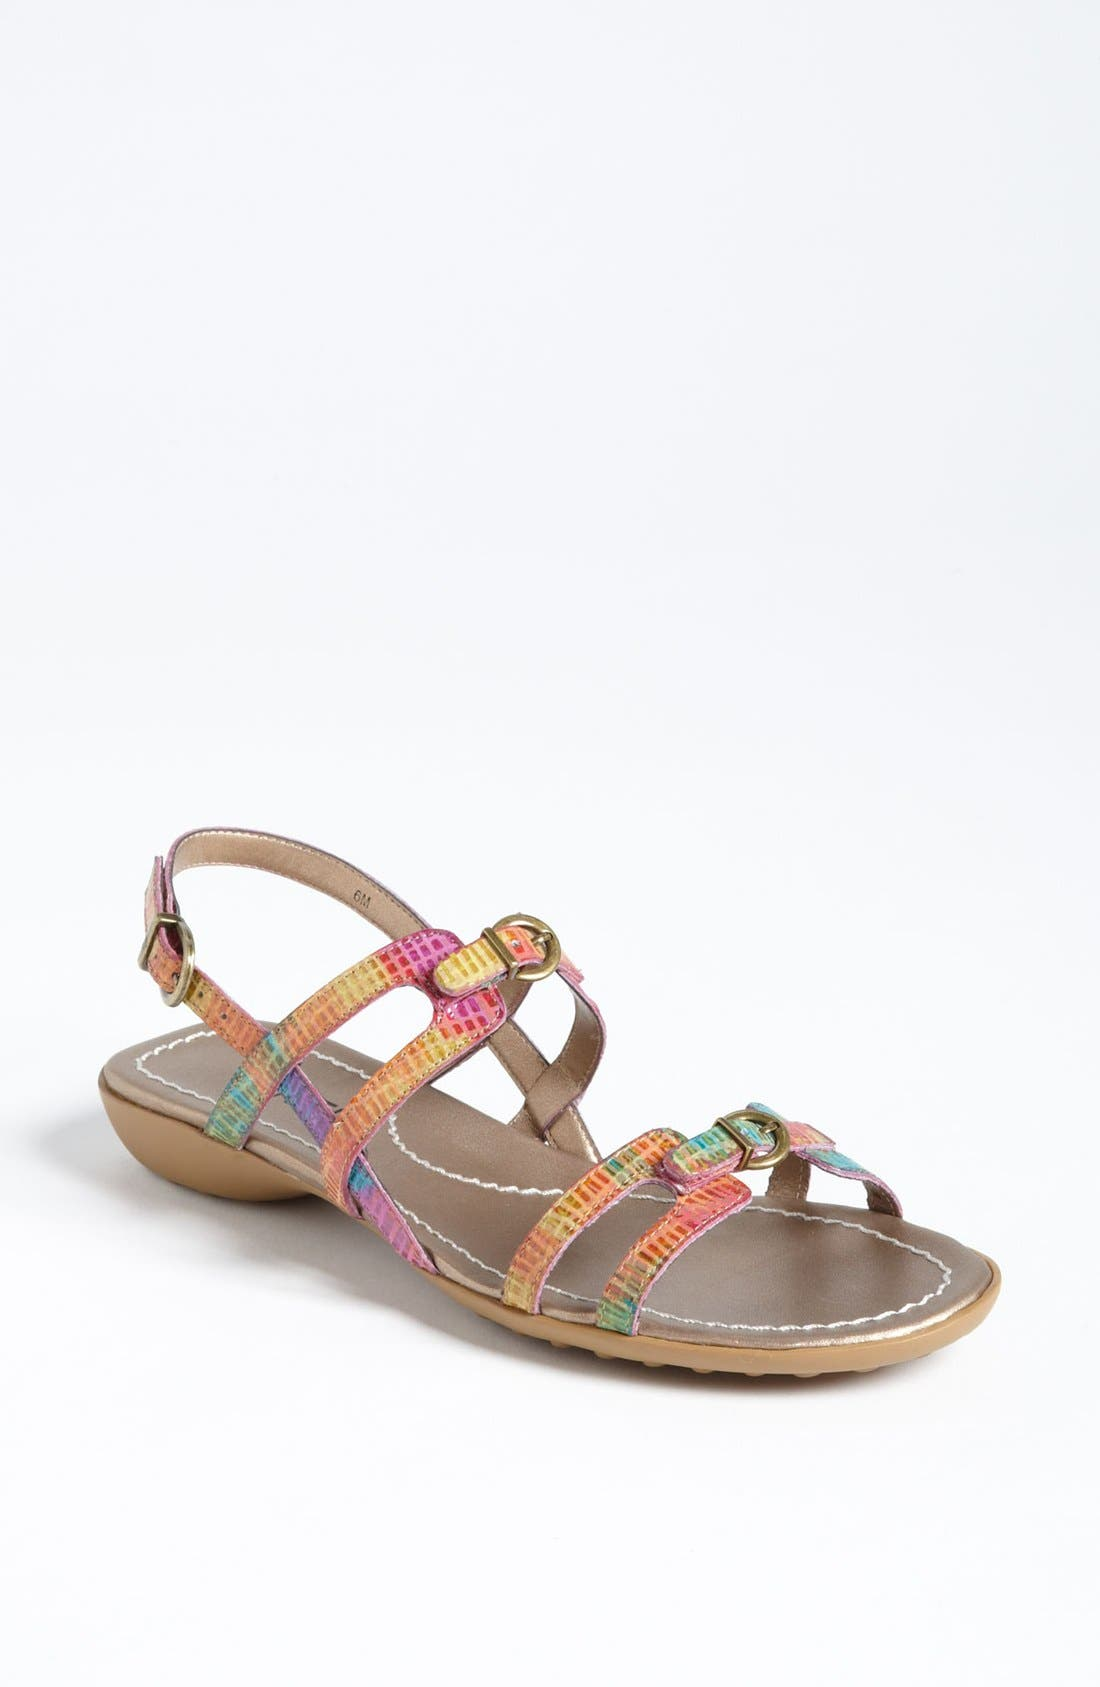 Alternate Image 1 Selected - VANELi 'Tagus' Sandal